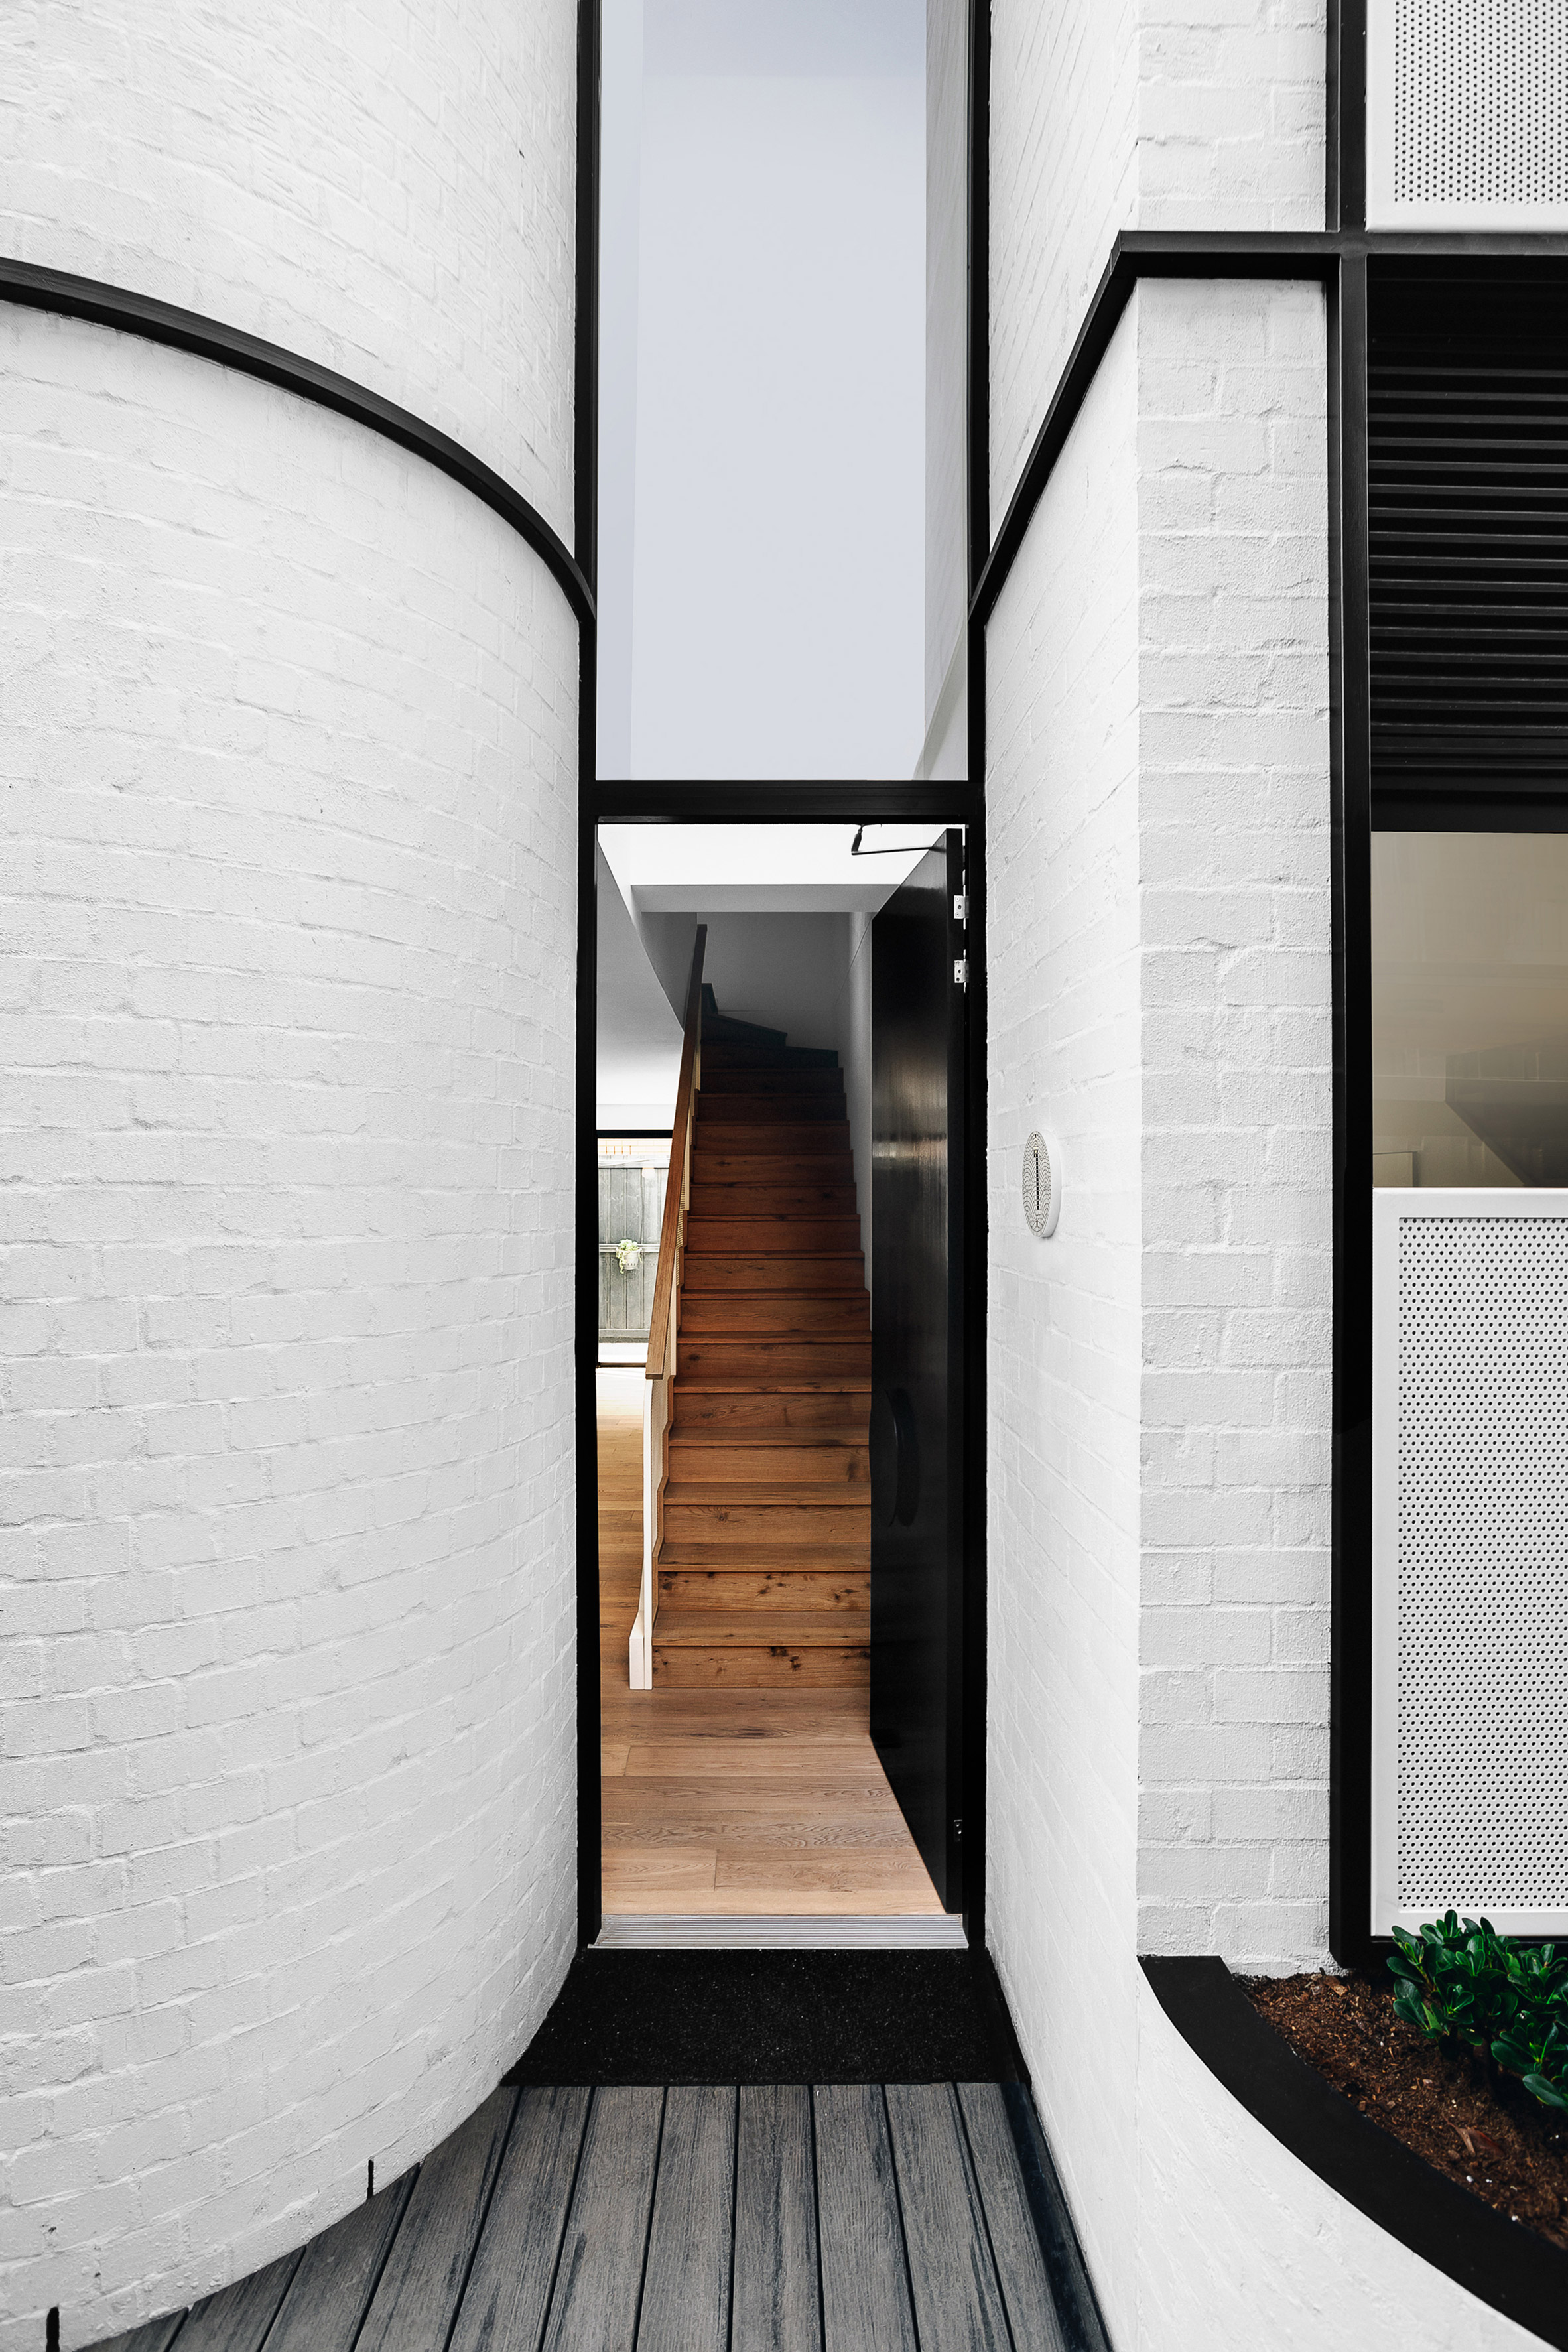 Exterior of Pine Ave townhouses by Cera Stribley Architects and The Stella Collective